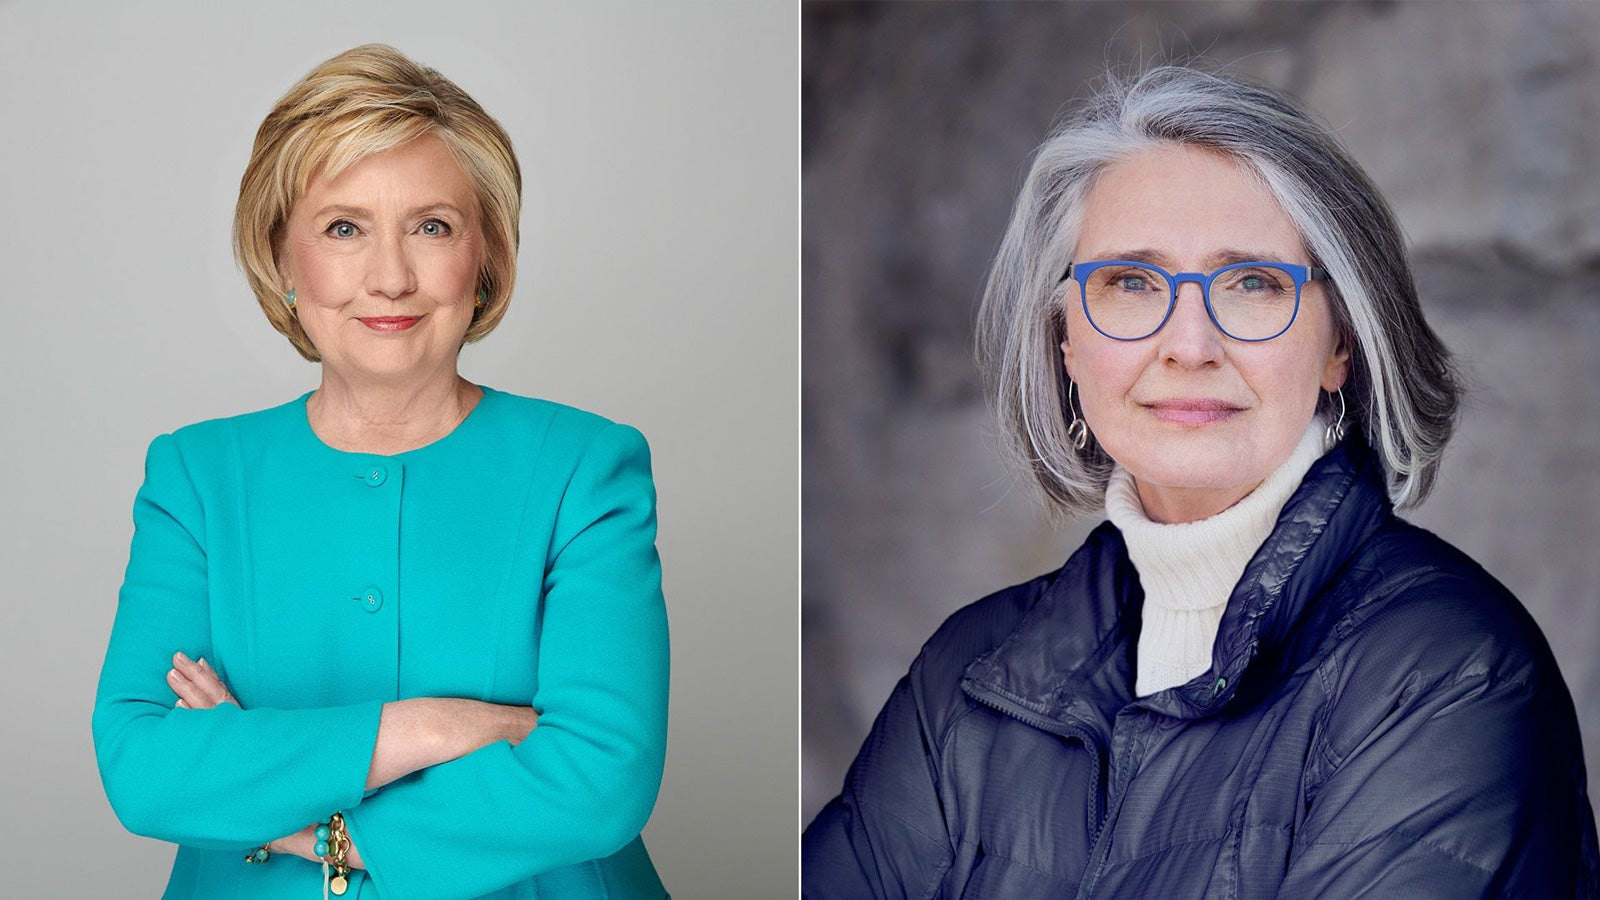 Image of Hillary Clinton smiling next to an image of Louise Penny